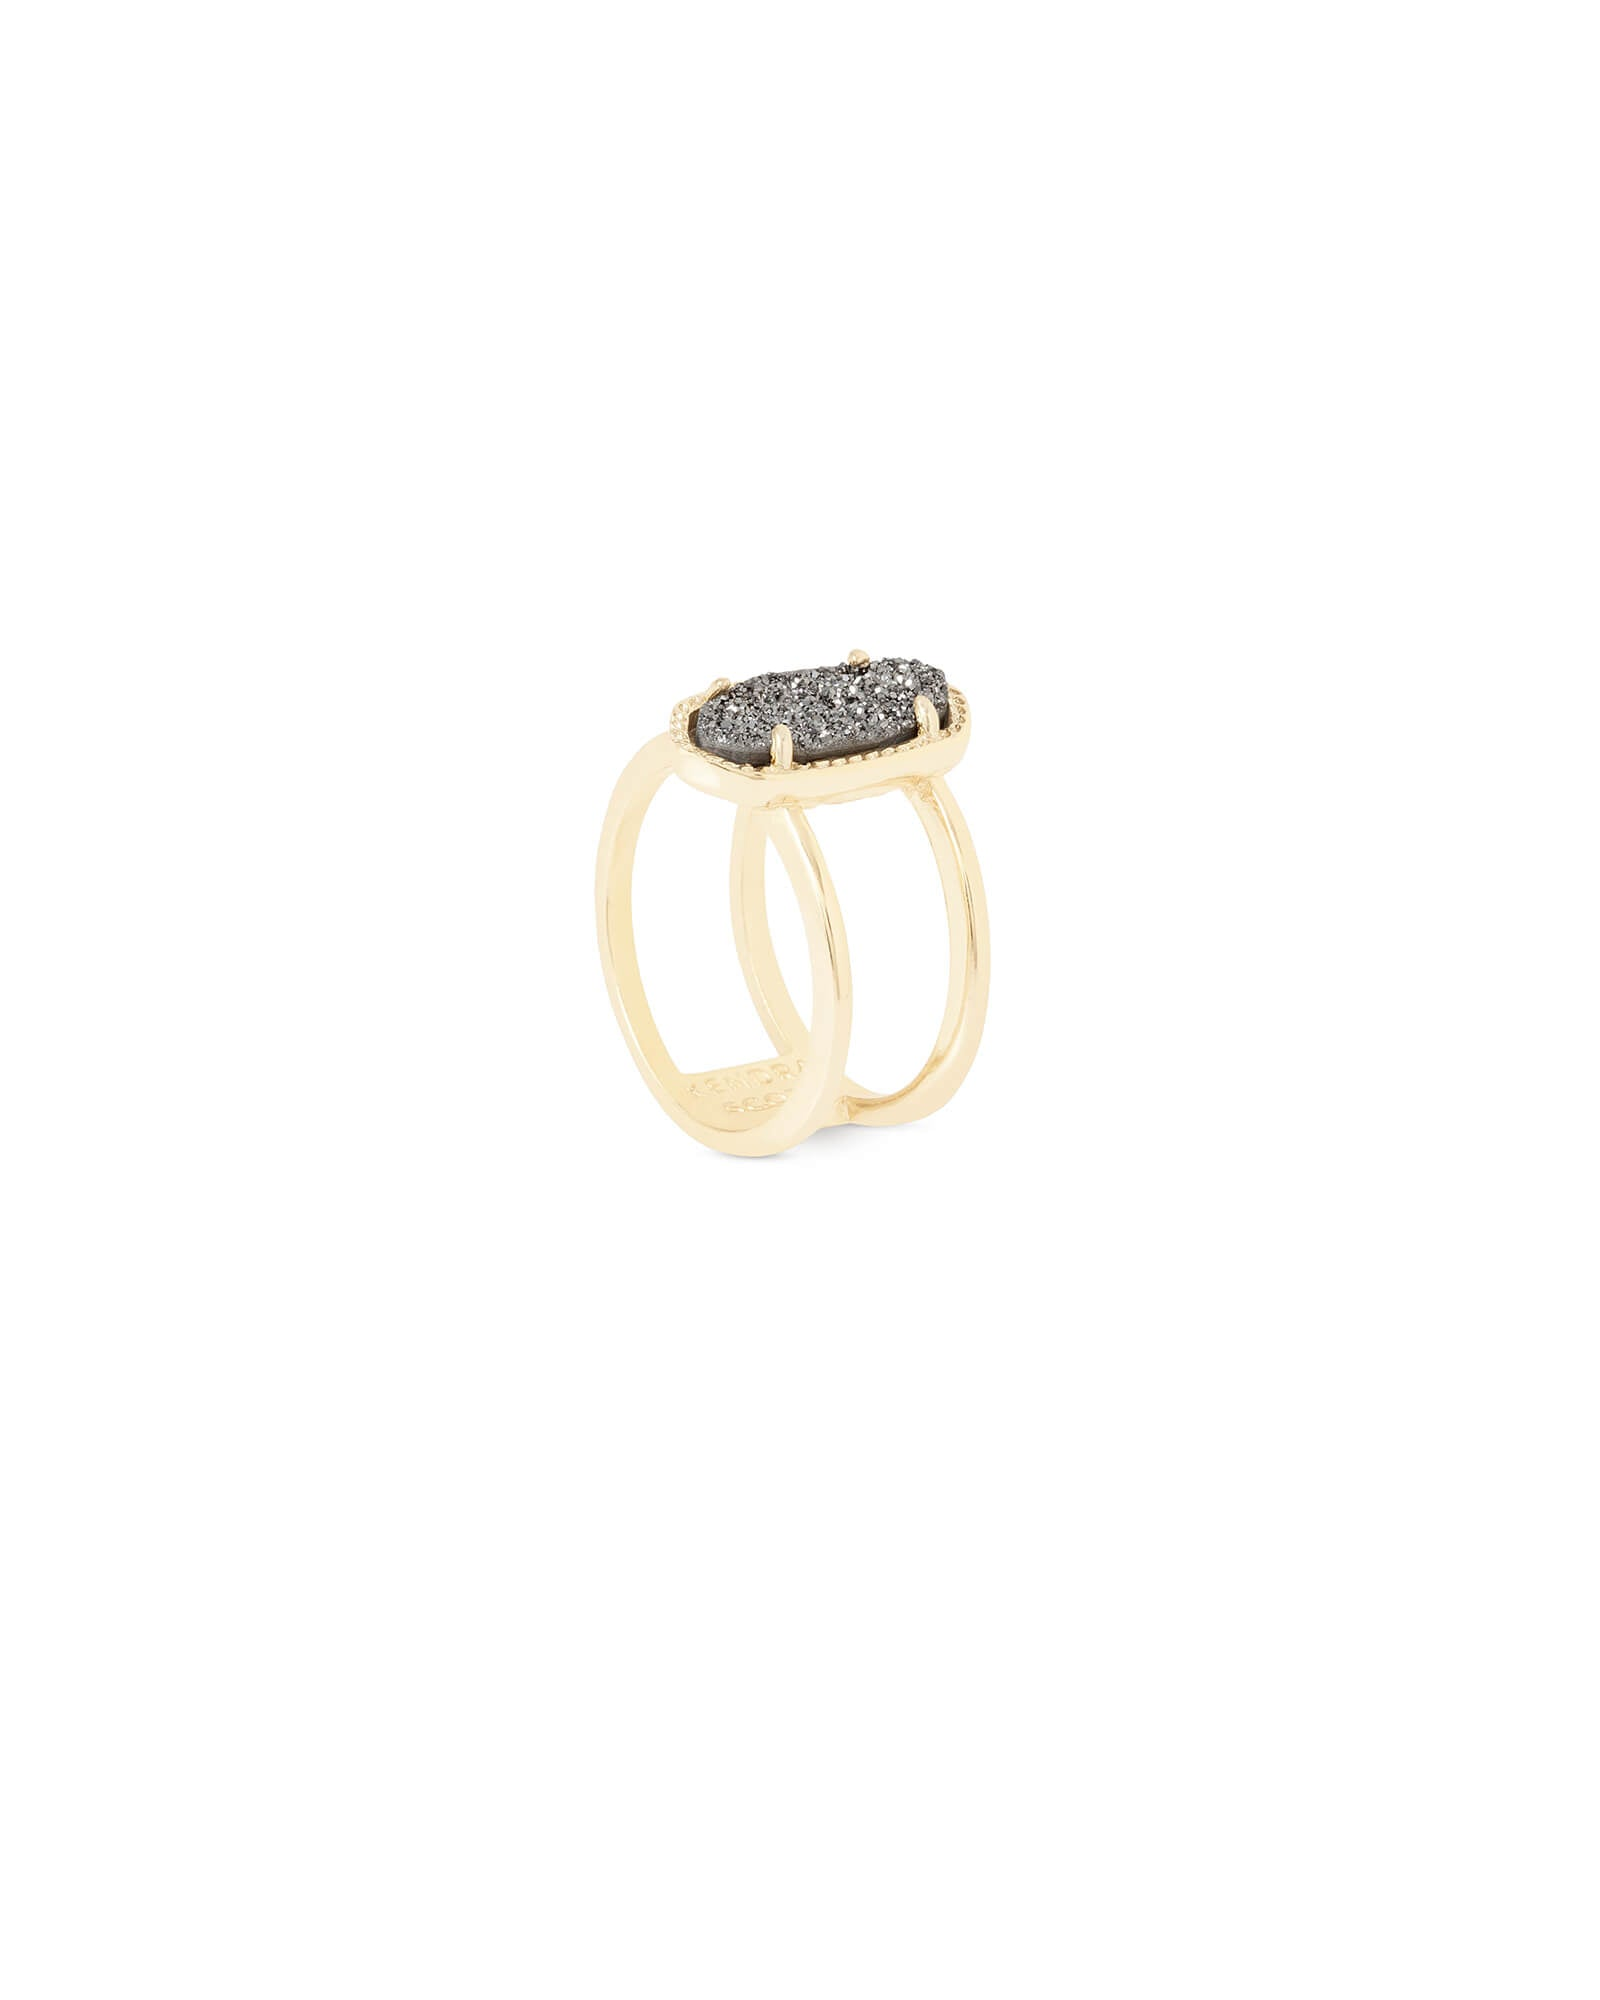 Elyse Ring - Platinum Drusy Gold